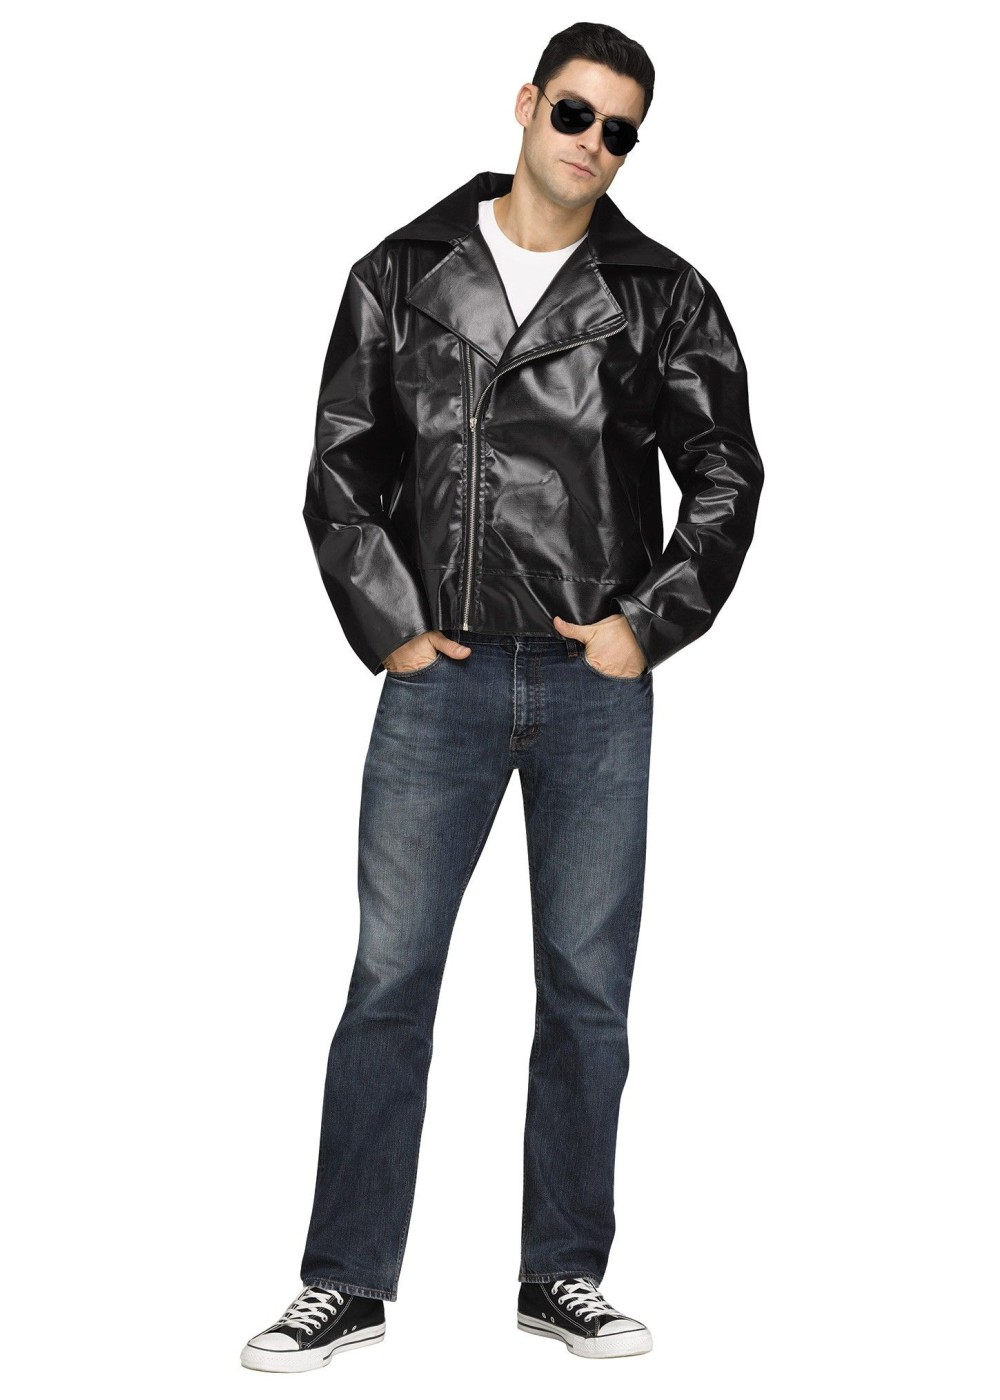 50s Biker Jacket Men Costume